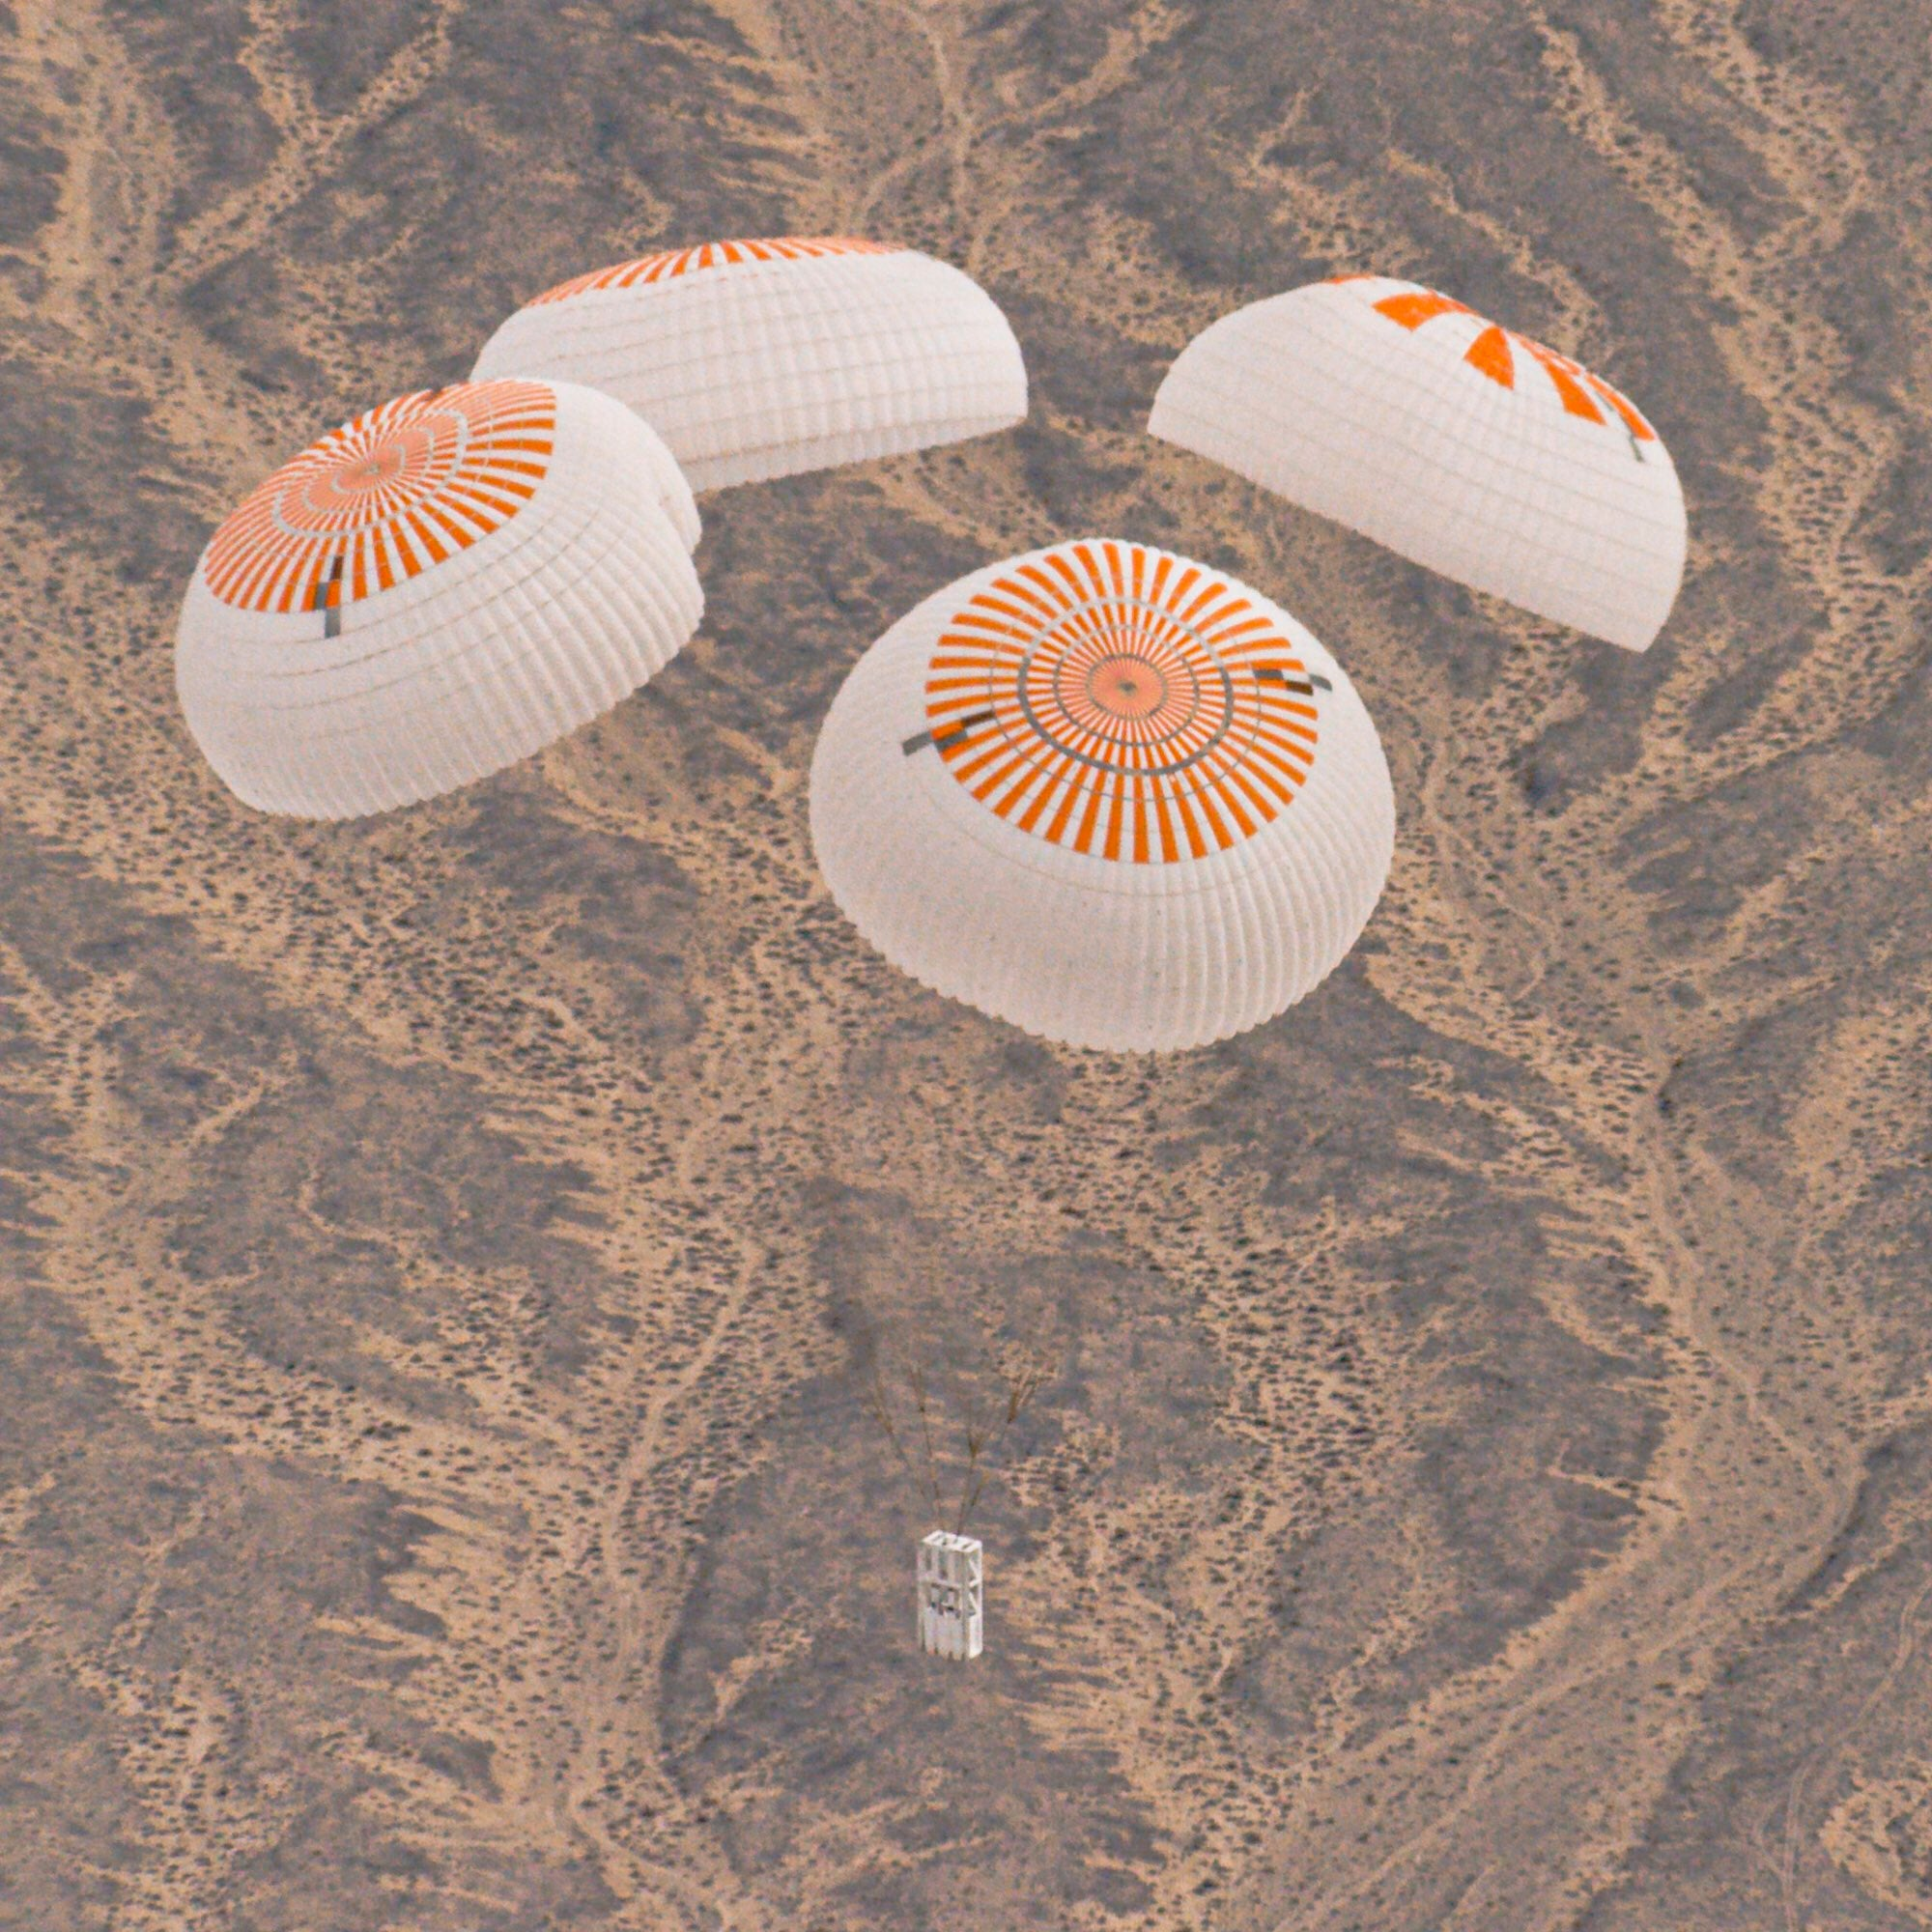 SpaceX completed the 7th successful test of Crew Dragon's upgraded parachutes